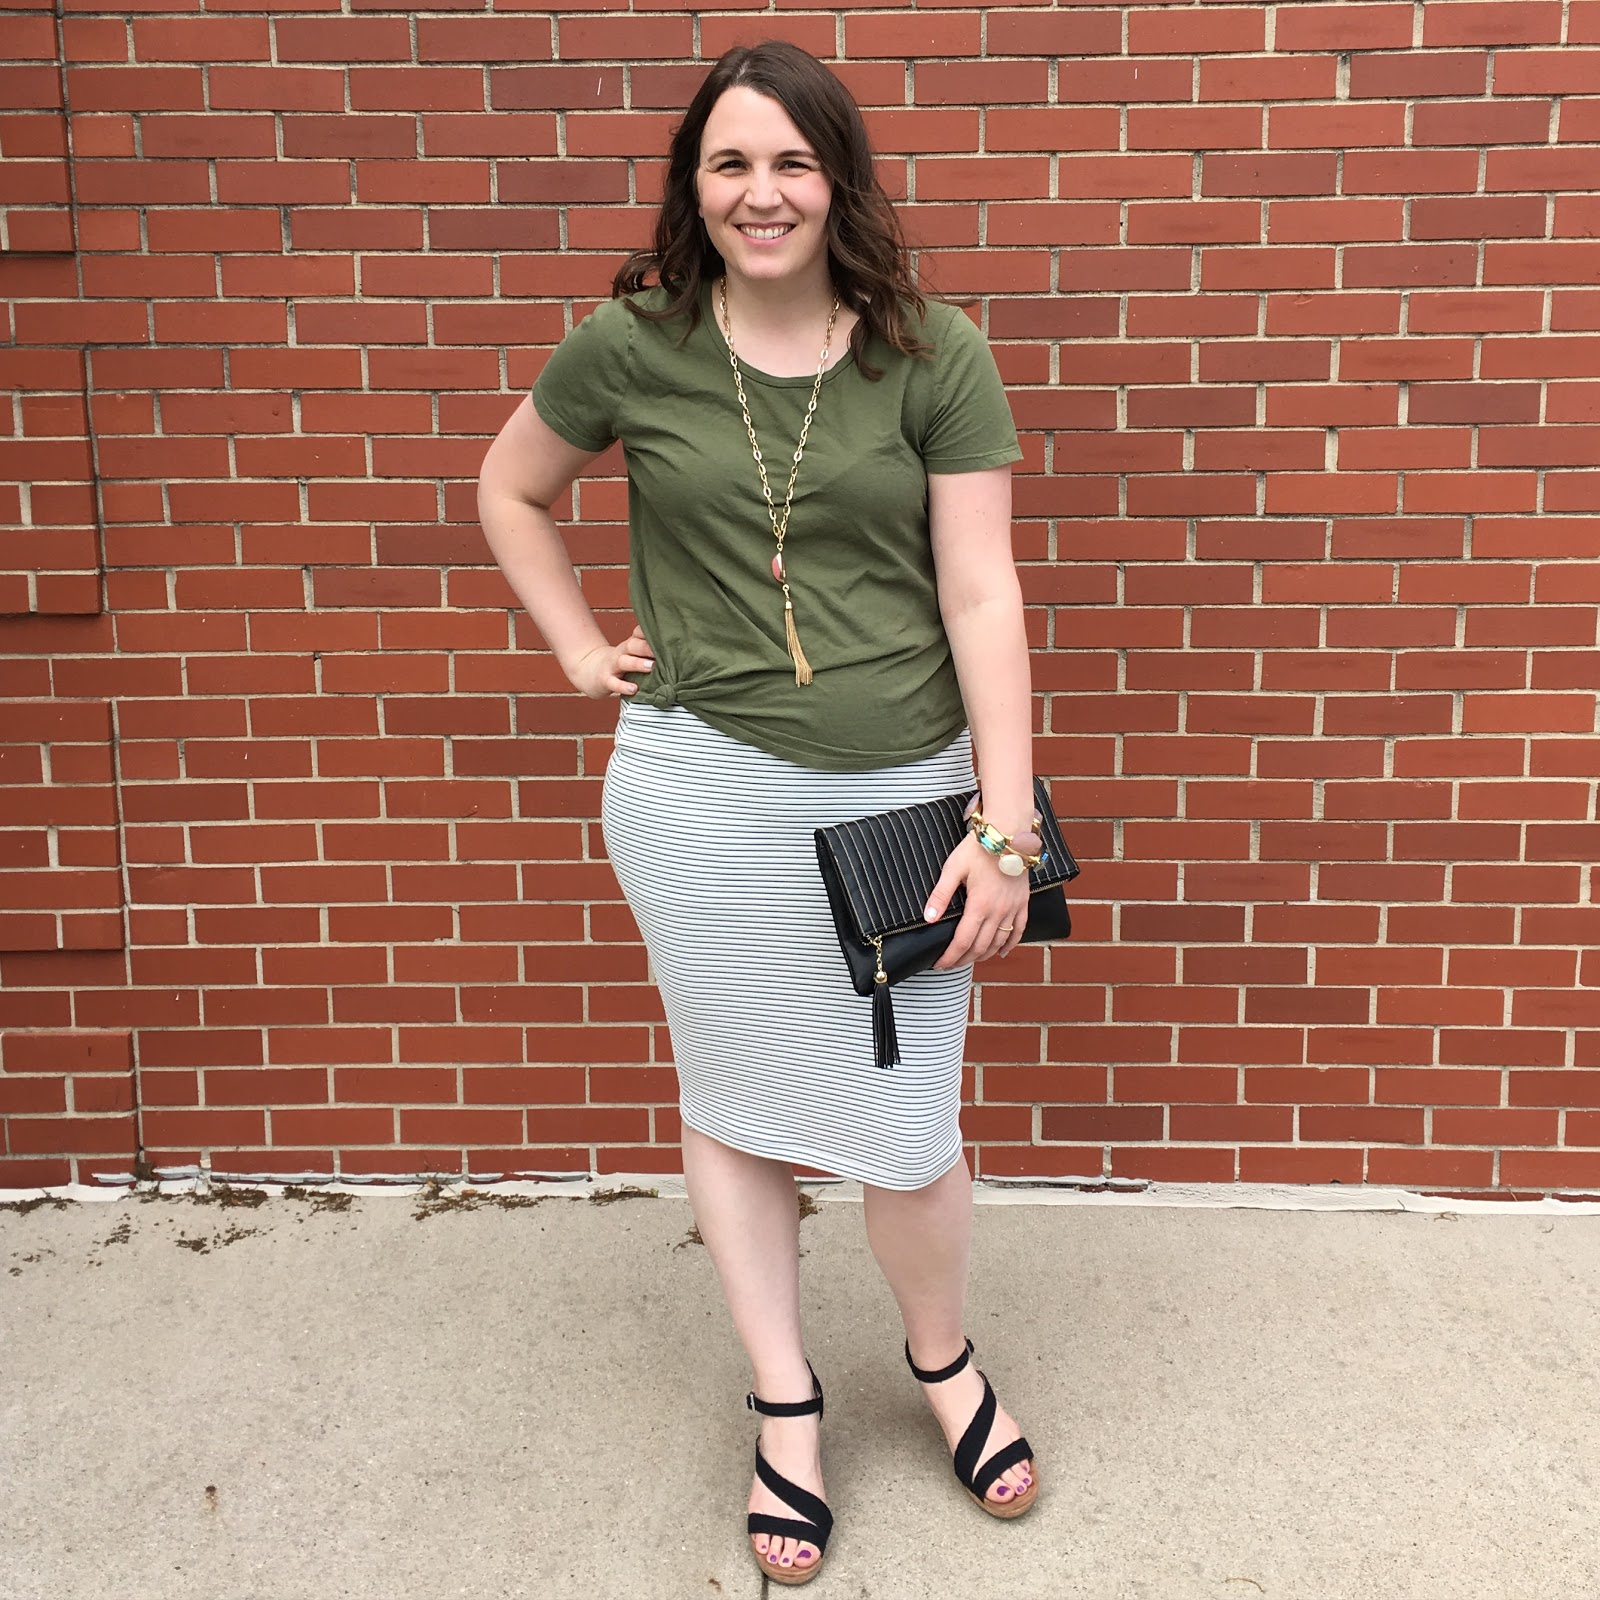 af921f4516 bybmg: What I Wore Wednesday 6.8 - Anniversary Outfit and Summer